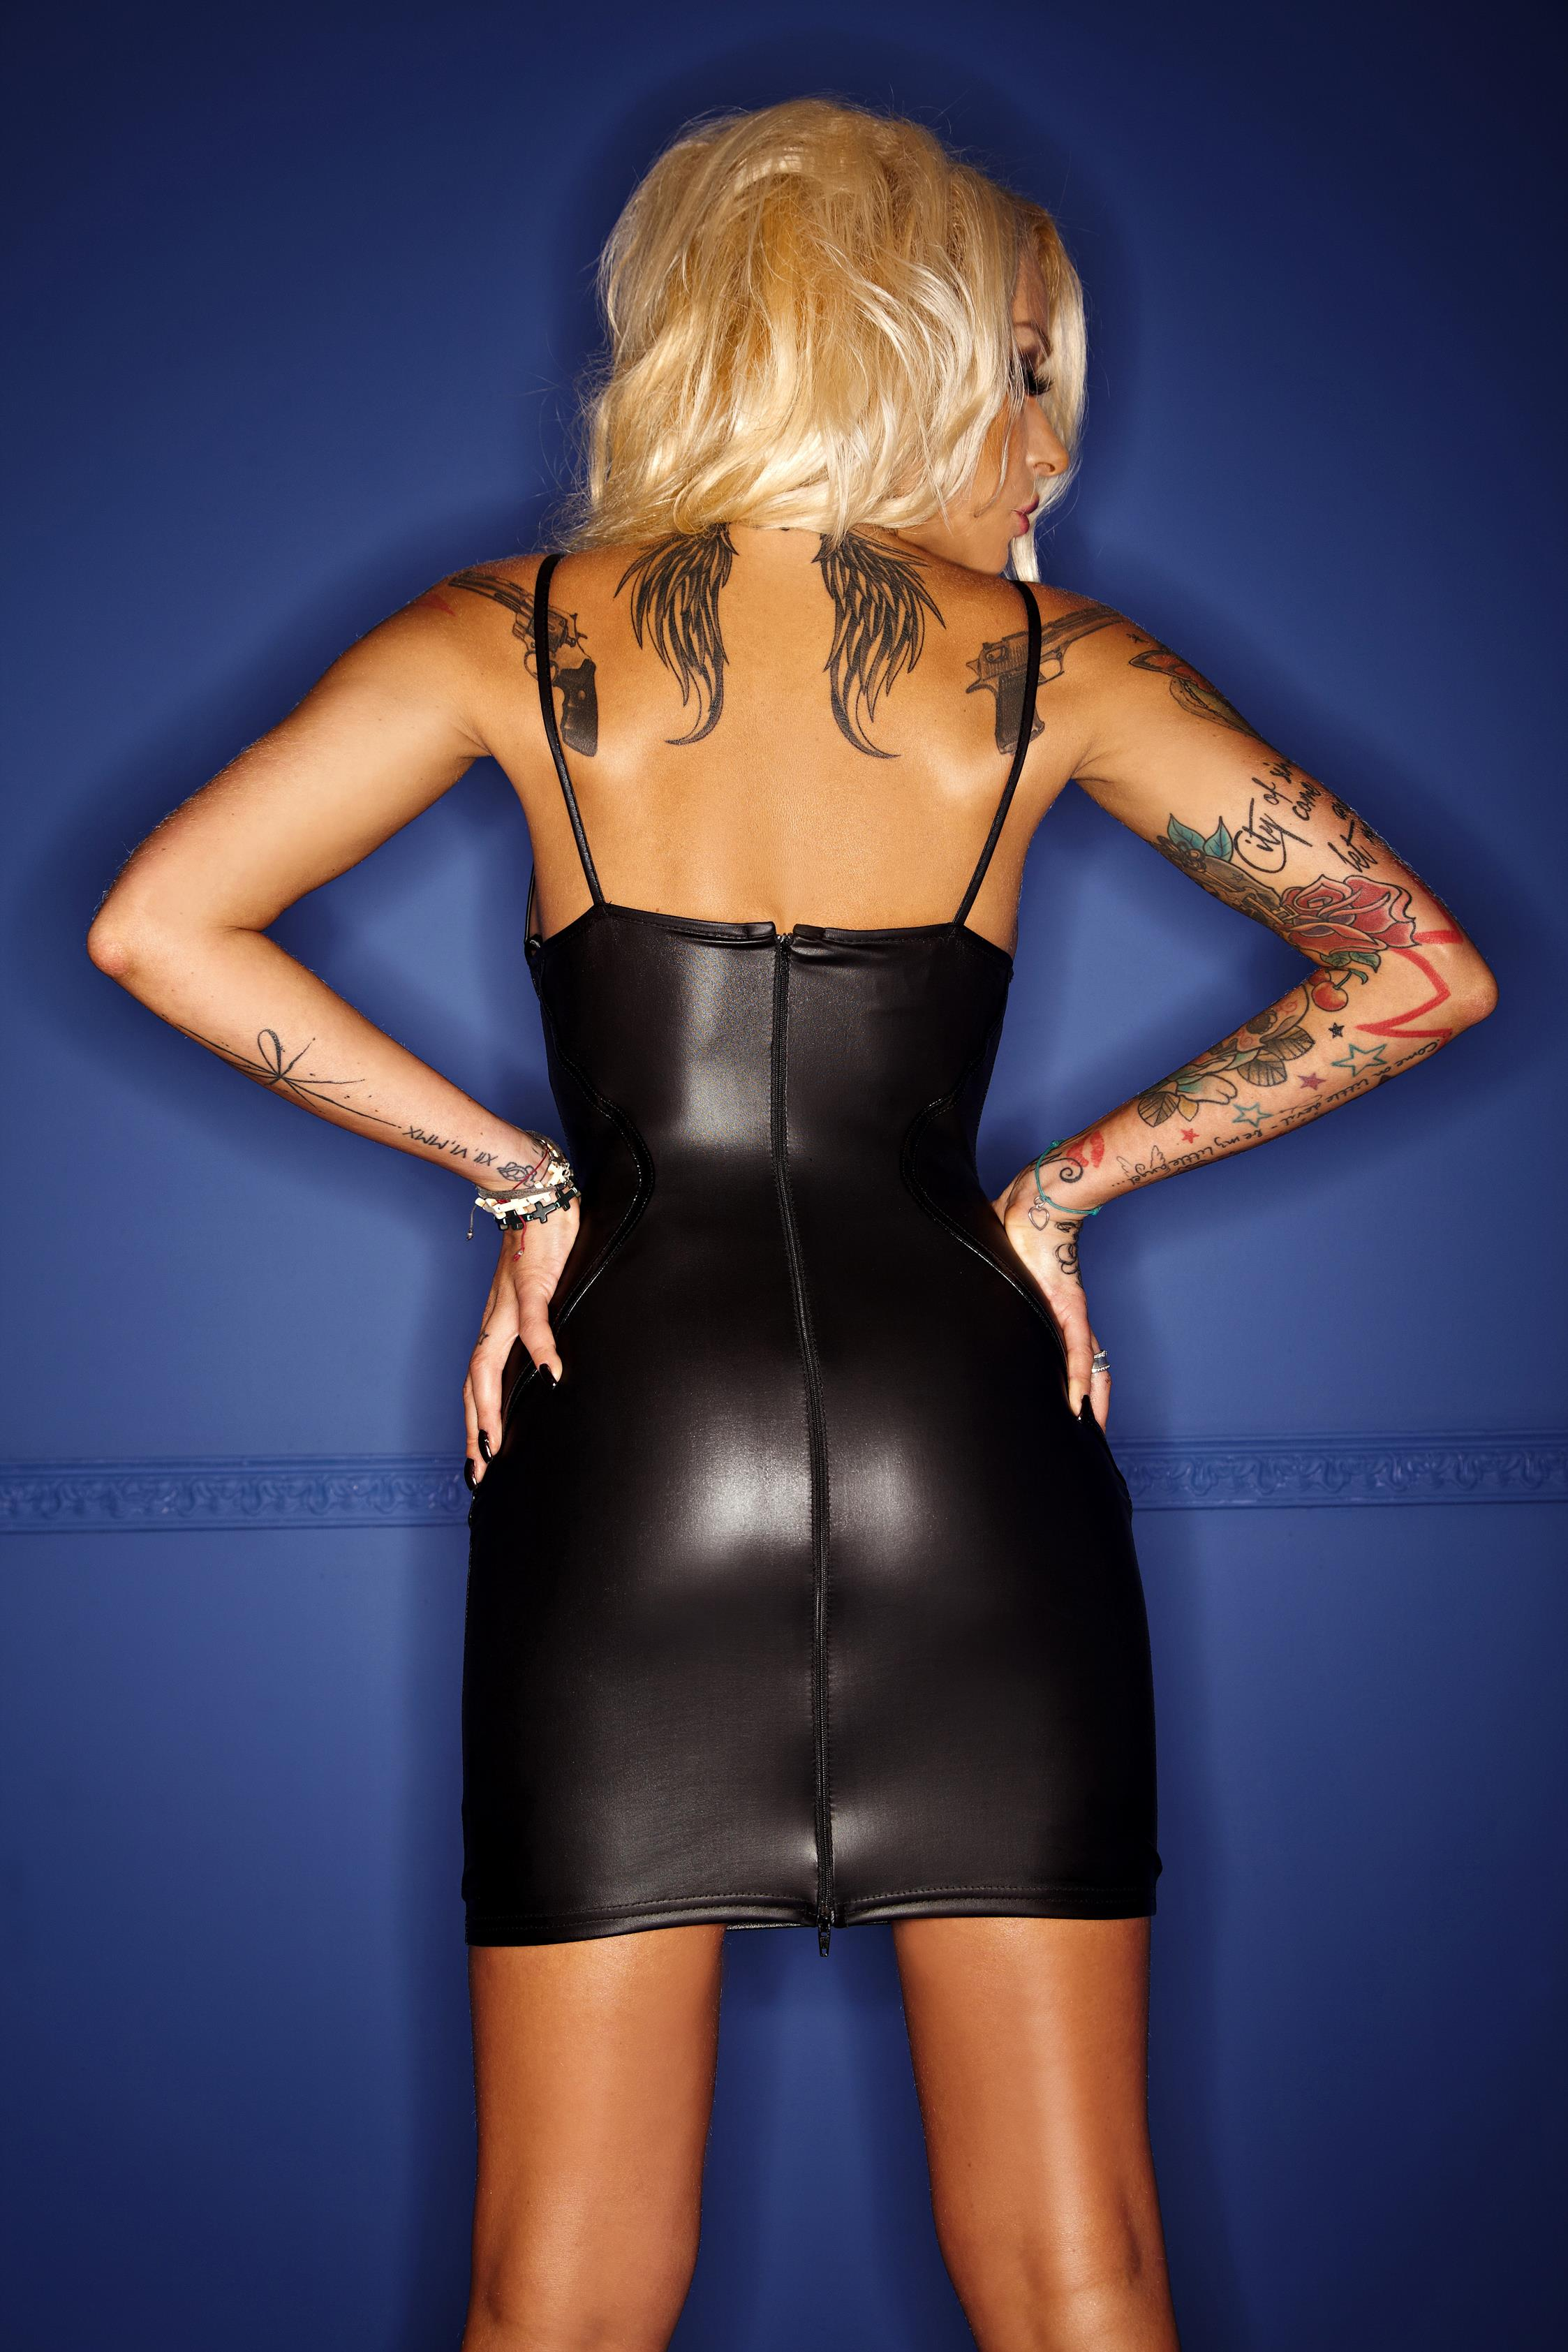 F078 Wetlook Kleid mit Tüll Dekoltee und PVC Applikationen